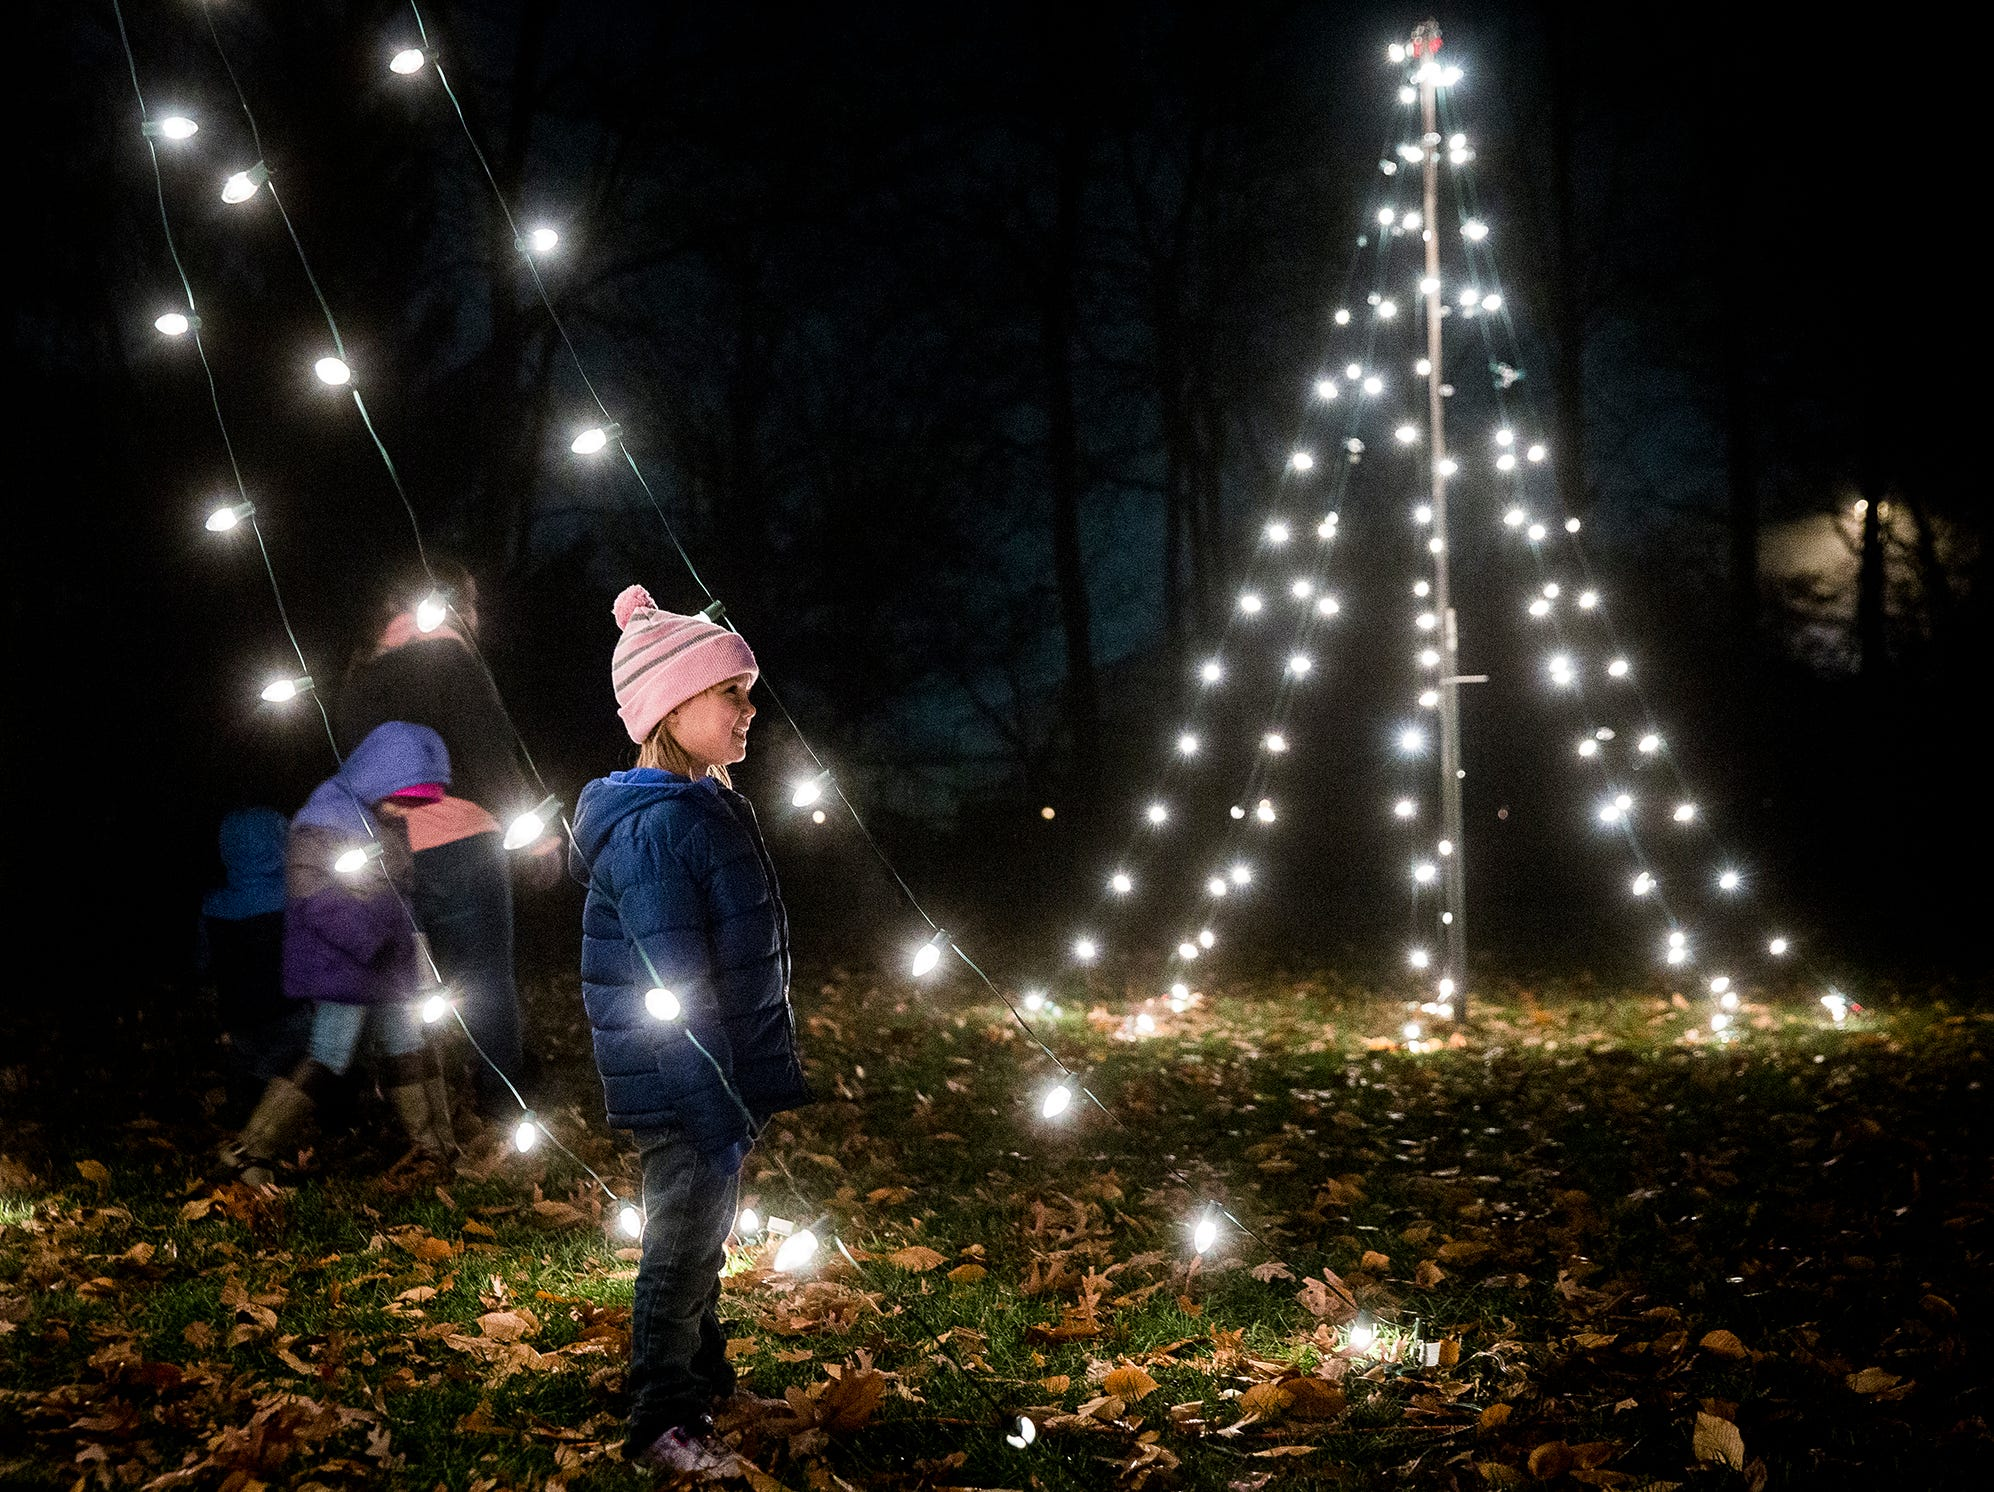 Minnetrista's free, annual community event, the Enchanted Luminaria Walk, returned Friday evening. The event features lights, carriage rides and holiday food and music.The Luminaria Walk continues Saturday from 6-9 p.m.